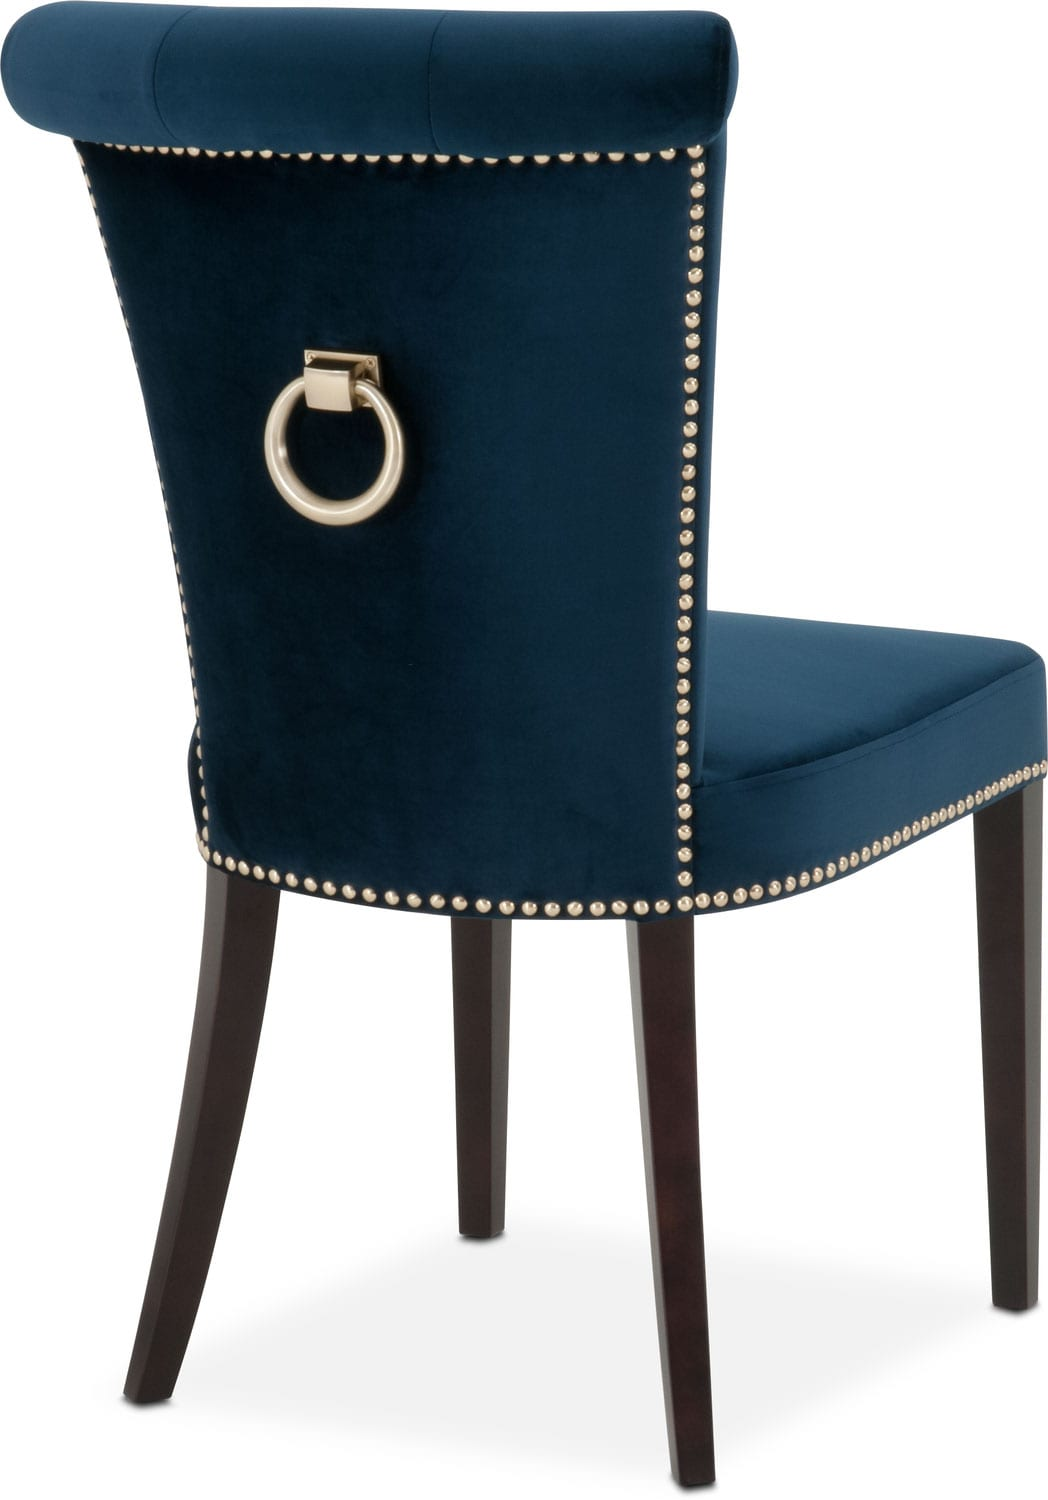 Navy Dining Room Chairs Calloway Side Chair Navy Gold Value City Furniture And